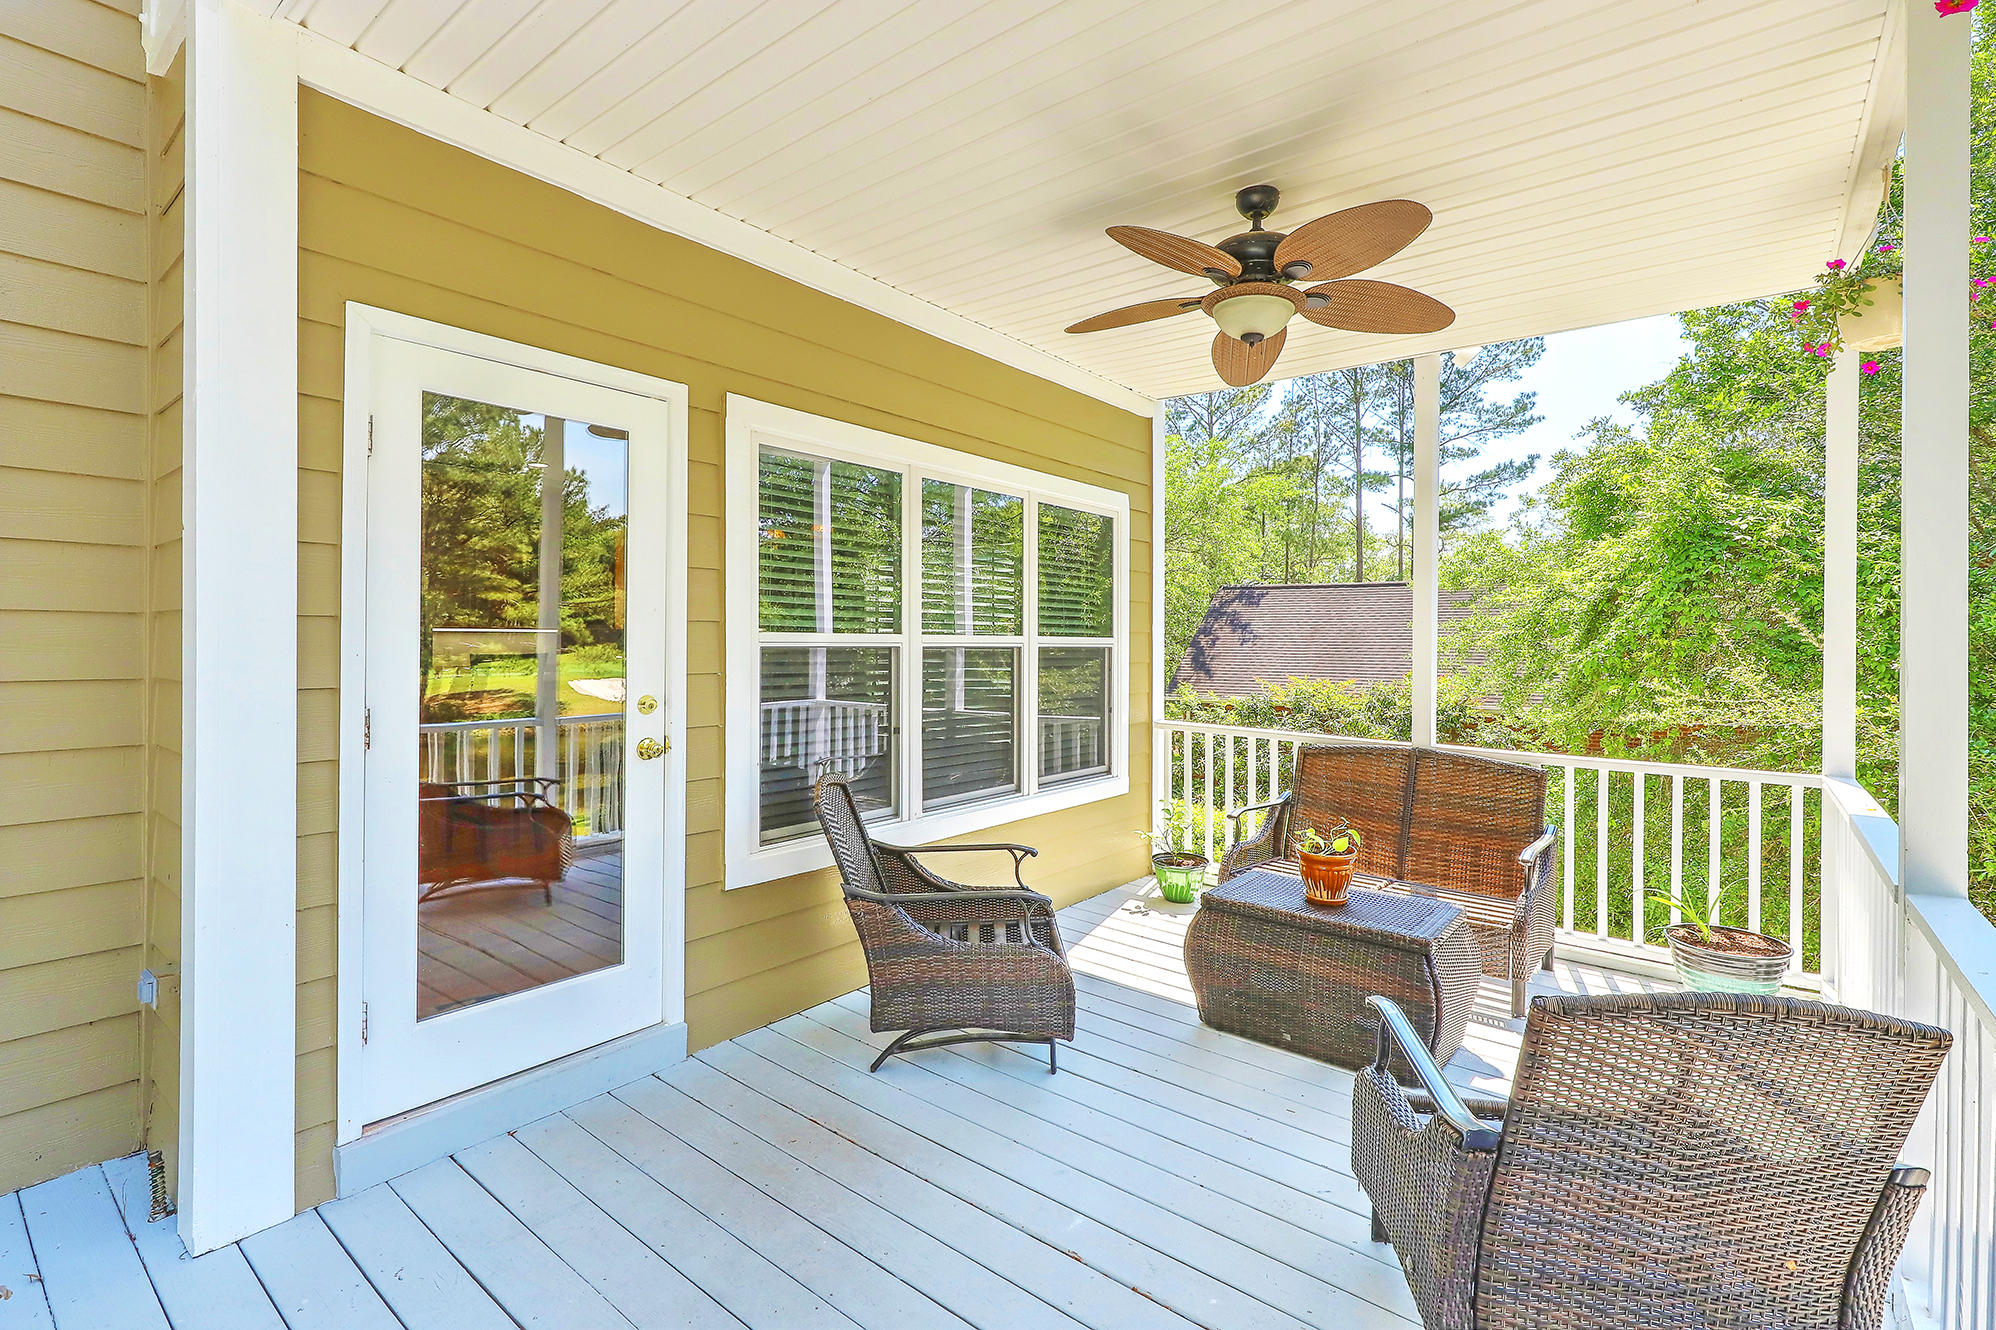 Stono Ferry Homes For Sale - 5104 St Ann, Hollywood, SC - 34